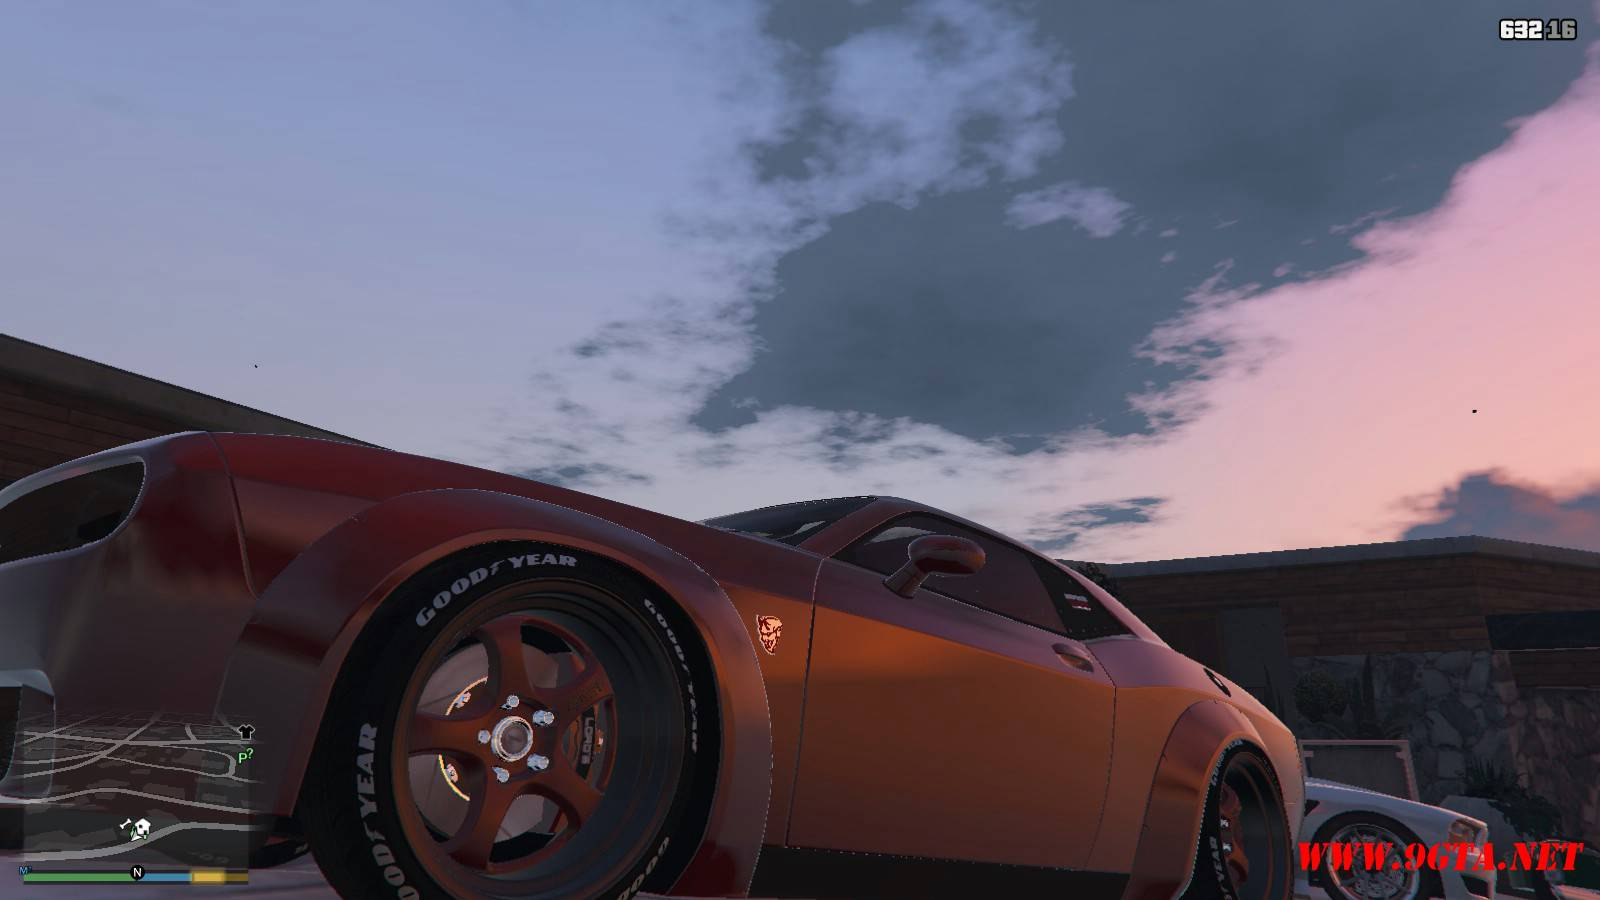 2018 Dodge Challenger SRT Demon v1.4 Mod For GTA5 (18)